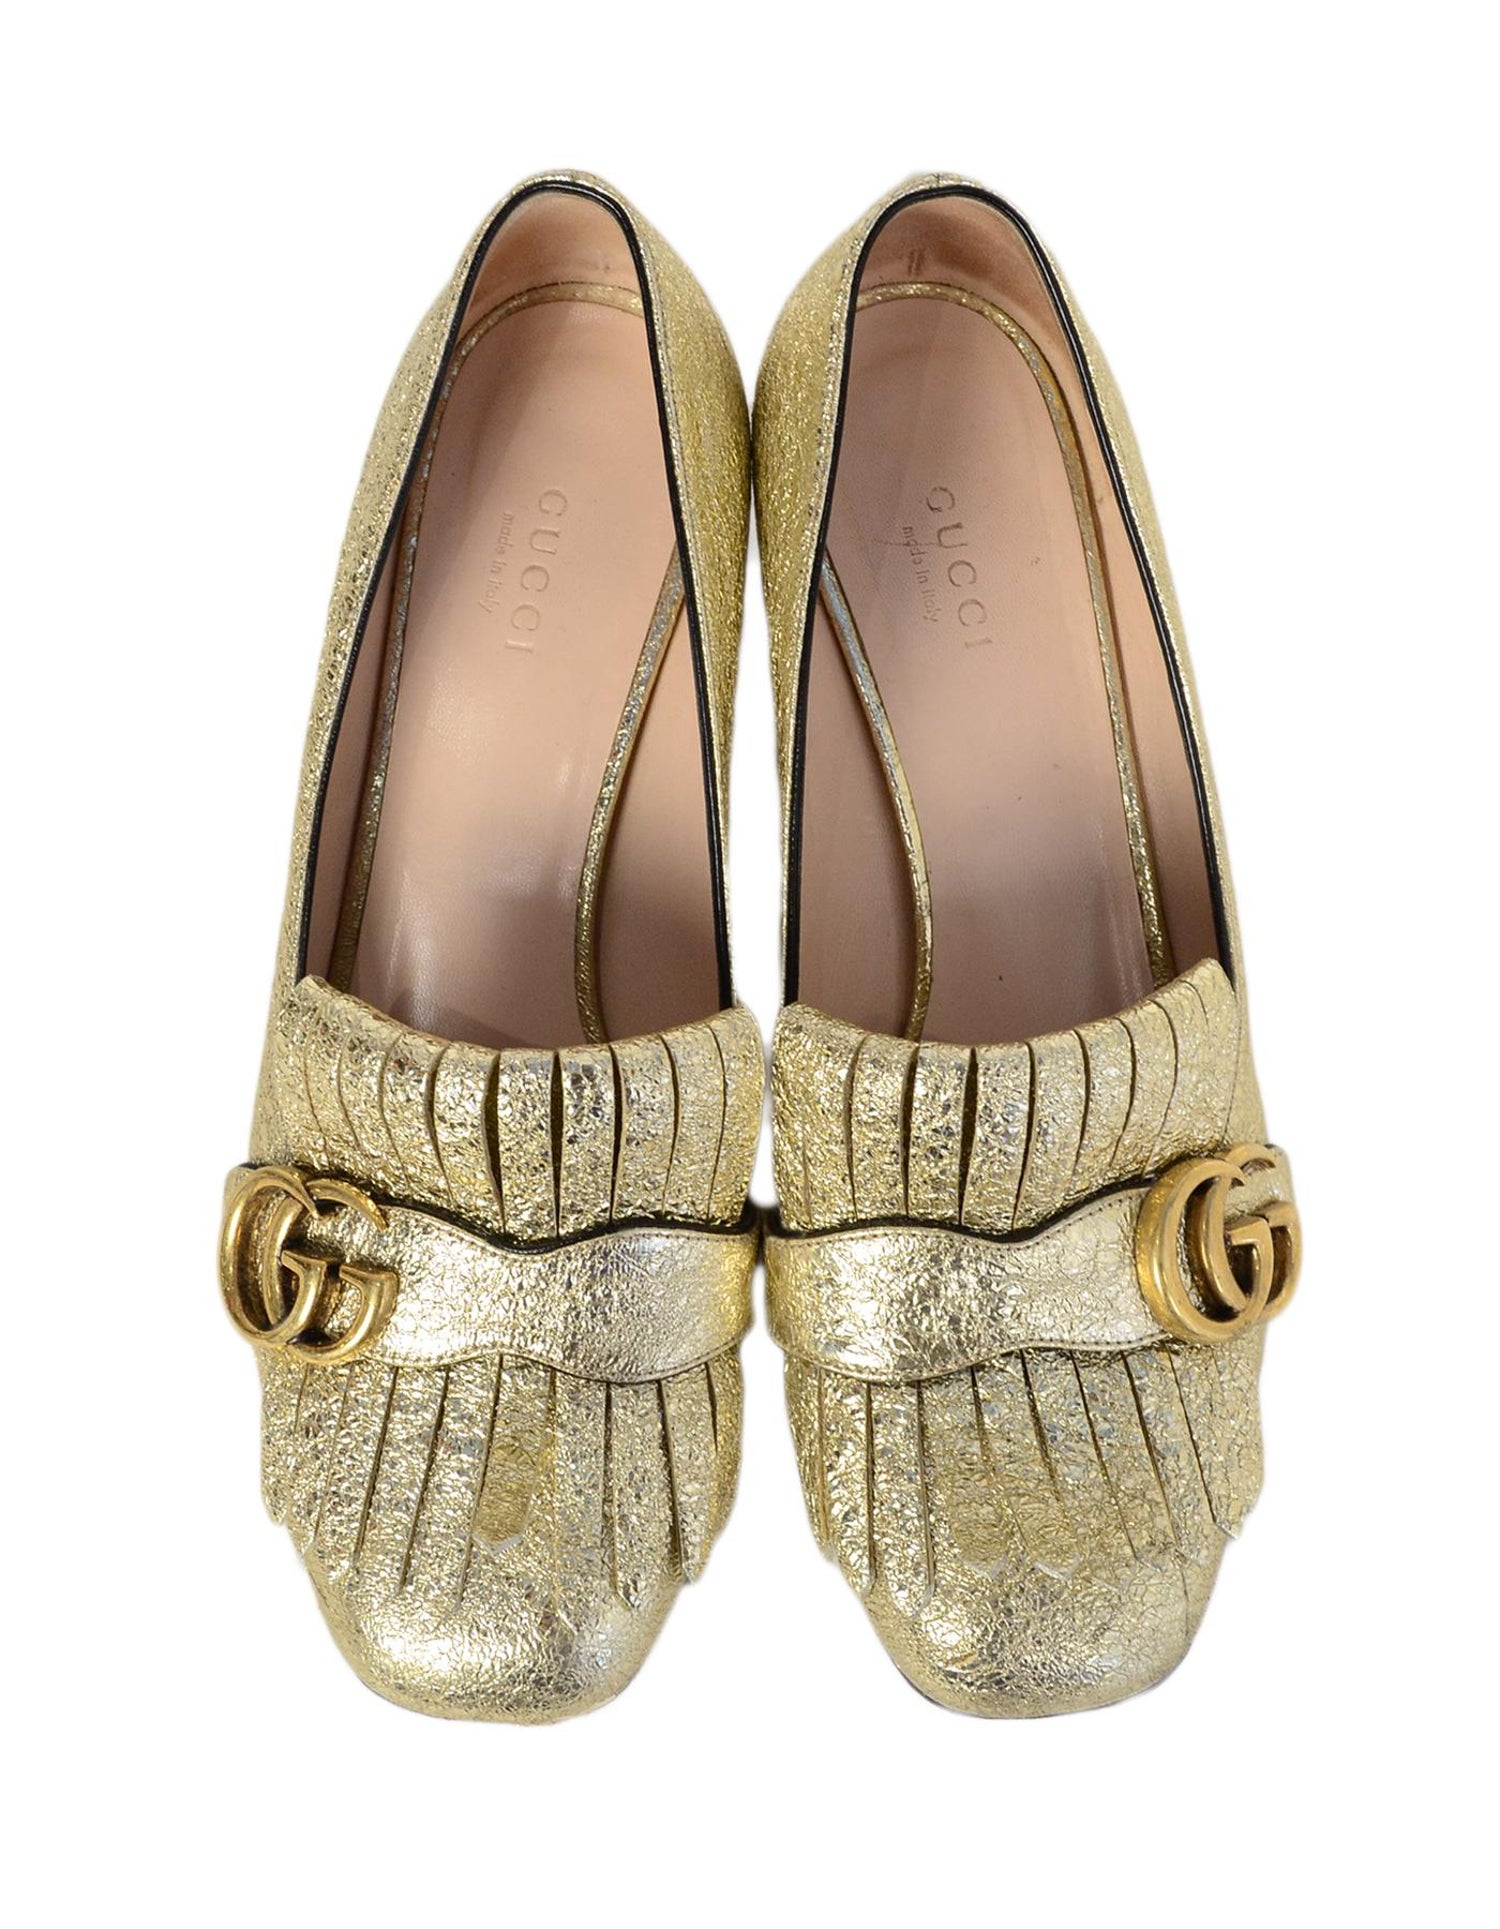 088ec6453 Gucci Gold Metallic Leather Marmont Kiltie Fringe Loafer Heels Sz 38.5 For  Sale at 1stdibs